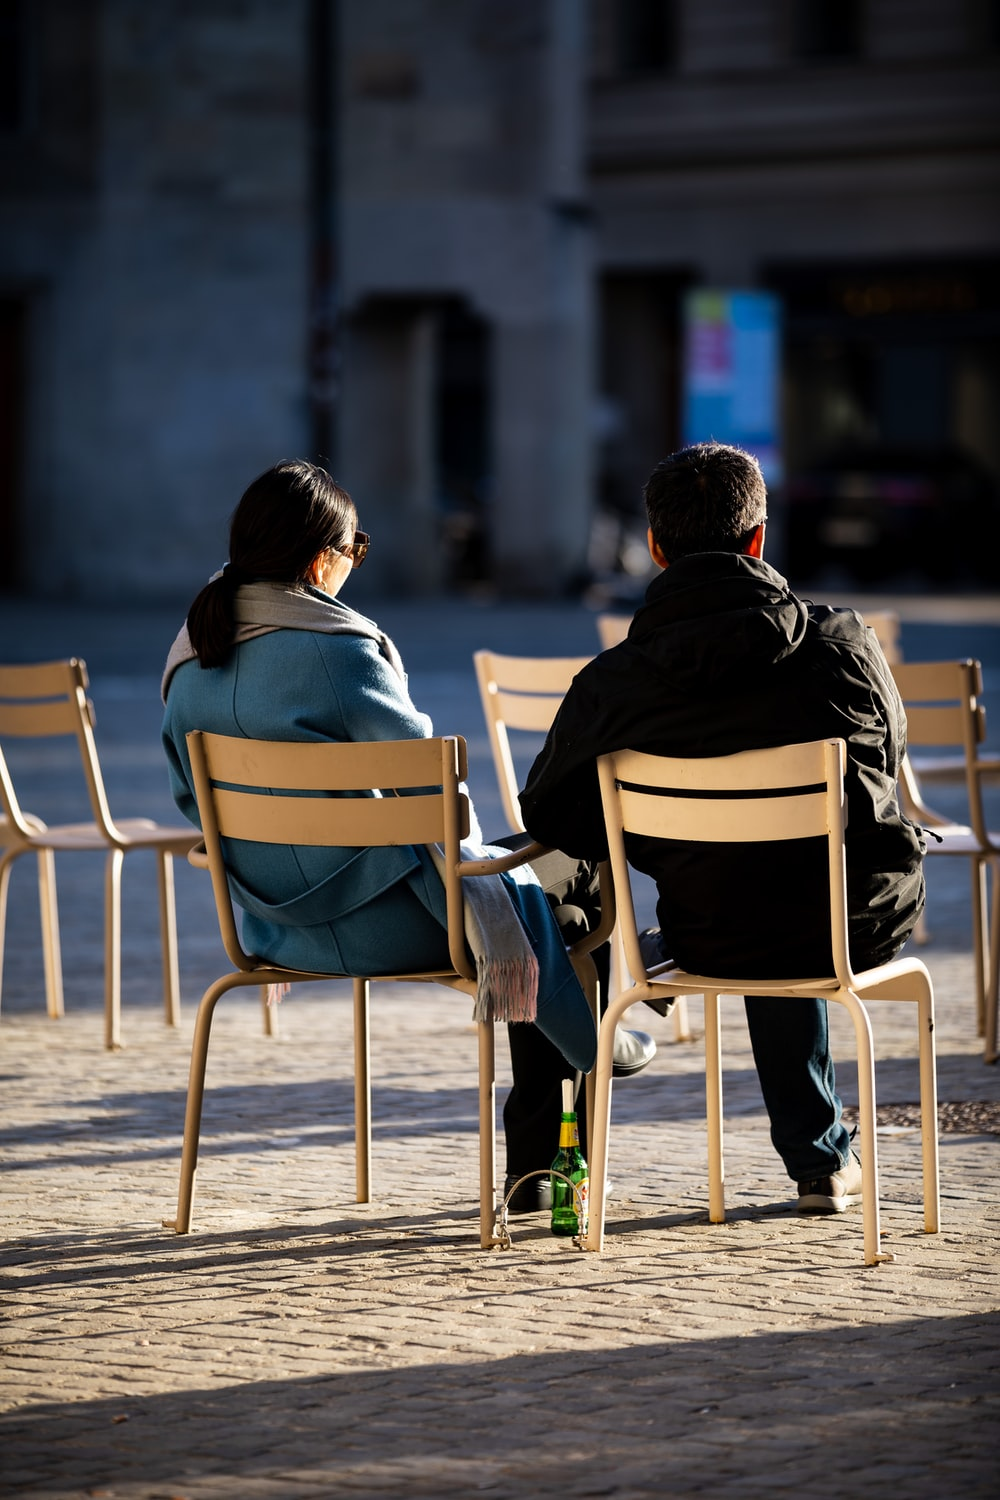 man and woman sitting on white wooden chair during daytime